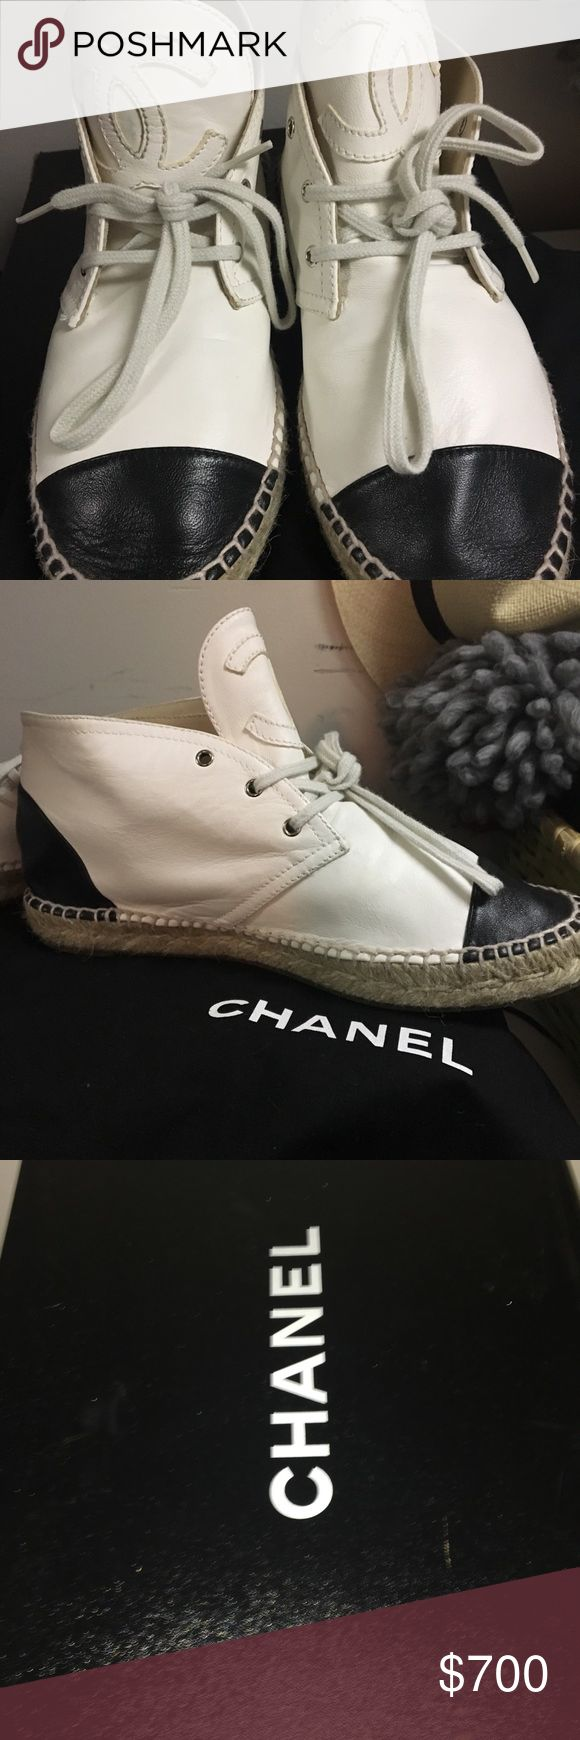 Chanel Lambskin High Top Espadrilles Authentic Chanel Black and White Espadrilles WITH original box and dust bag. Like new condition, only worn twice CHANEL Shoes Espadrilles